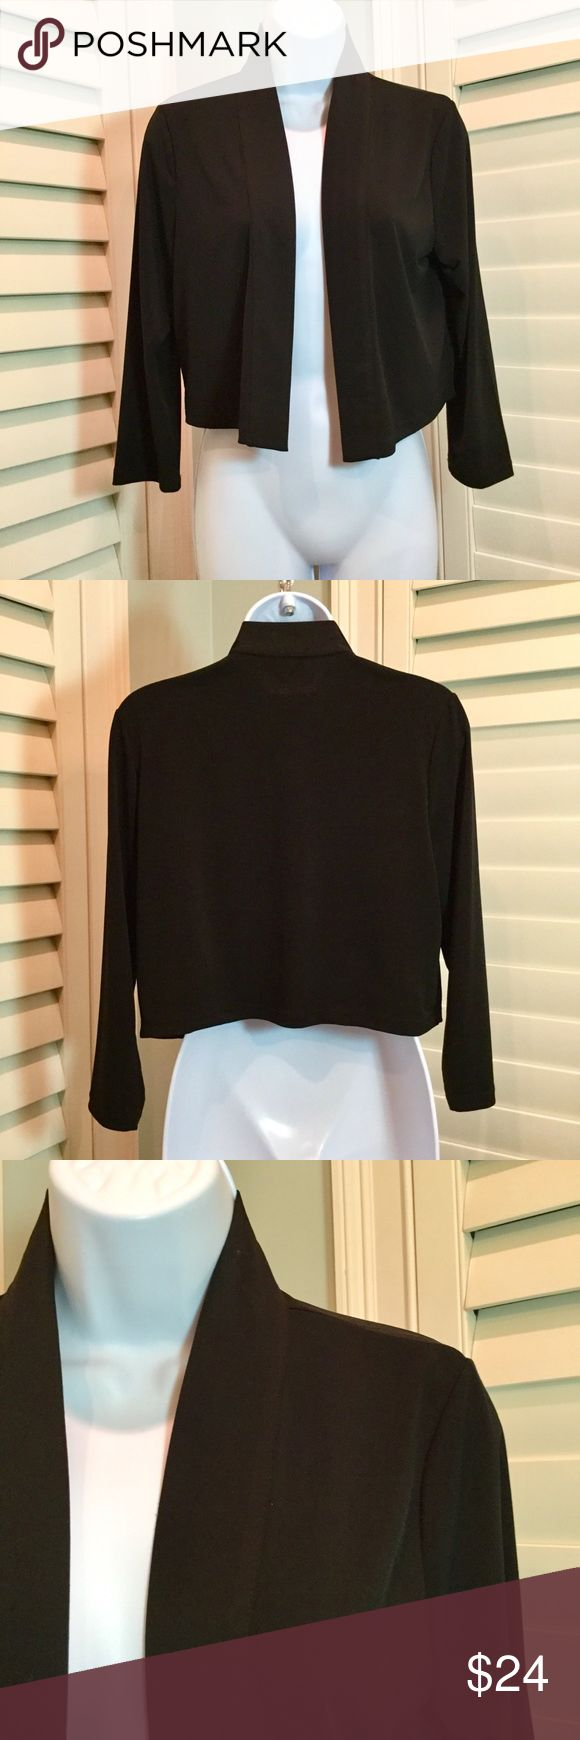 "Calvin Klein Shrug, Medium, EUC Black shrug with 3/4 sleeves. Lightweight and perfect for layering.   🔹95% polyester, 5% spandex  🔹Measurements: back armpit to armpit 18"", length 18"" 🔹Excellent preowned condition with no stains or holes  🔹Smoke free home (Sandy) Calvin Klein Sweaters Shrugs & Ponchos"